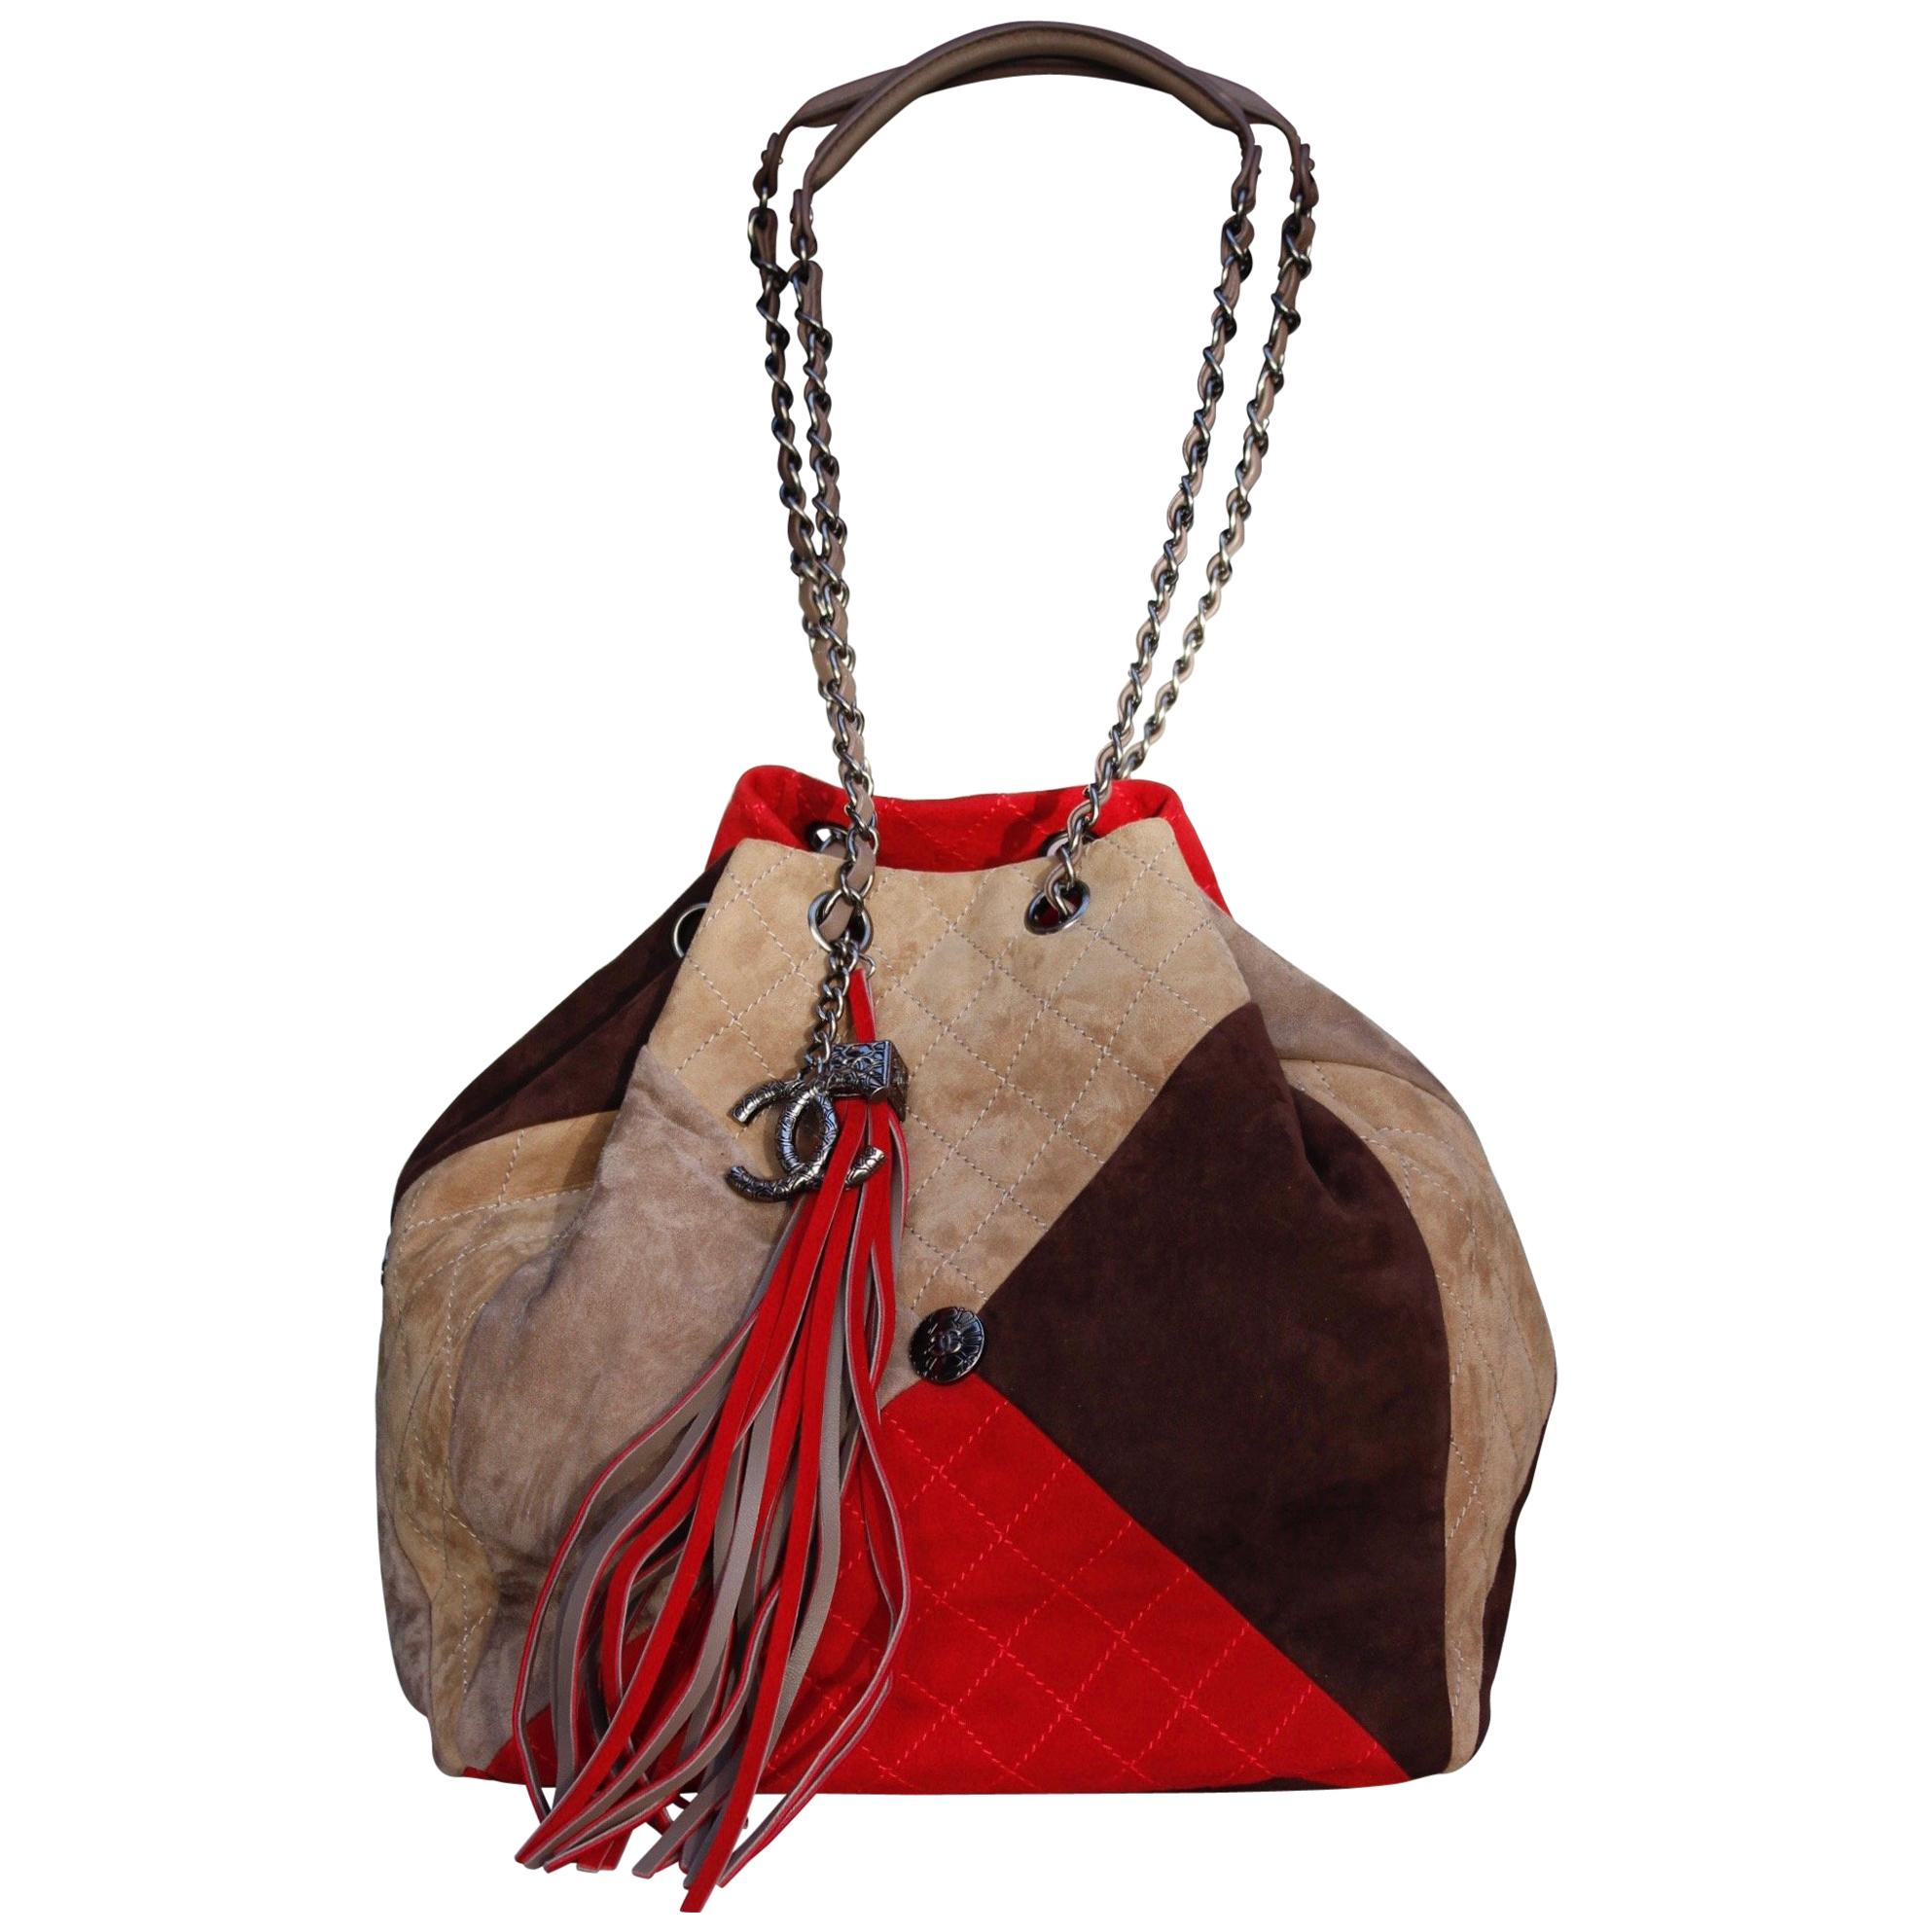 1e2dfd0f6599 Chanel large suede patchwork tote bag in beige, brown and red colors at  1stdibs